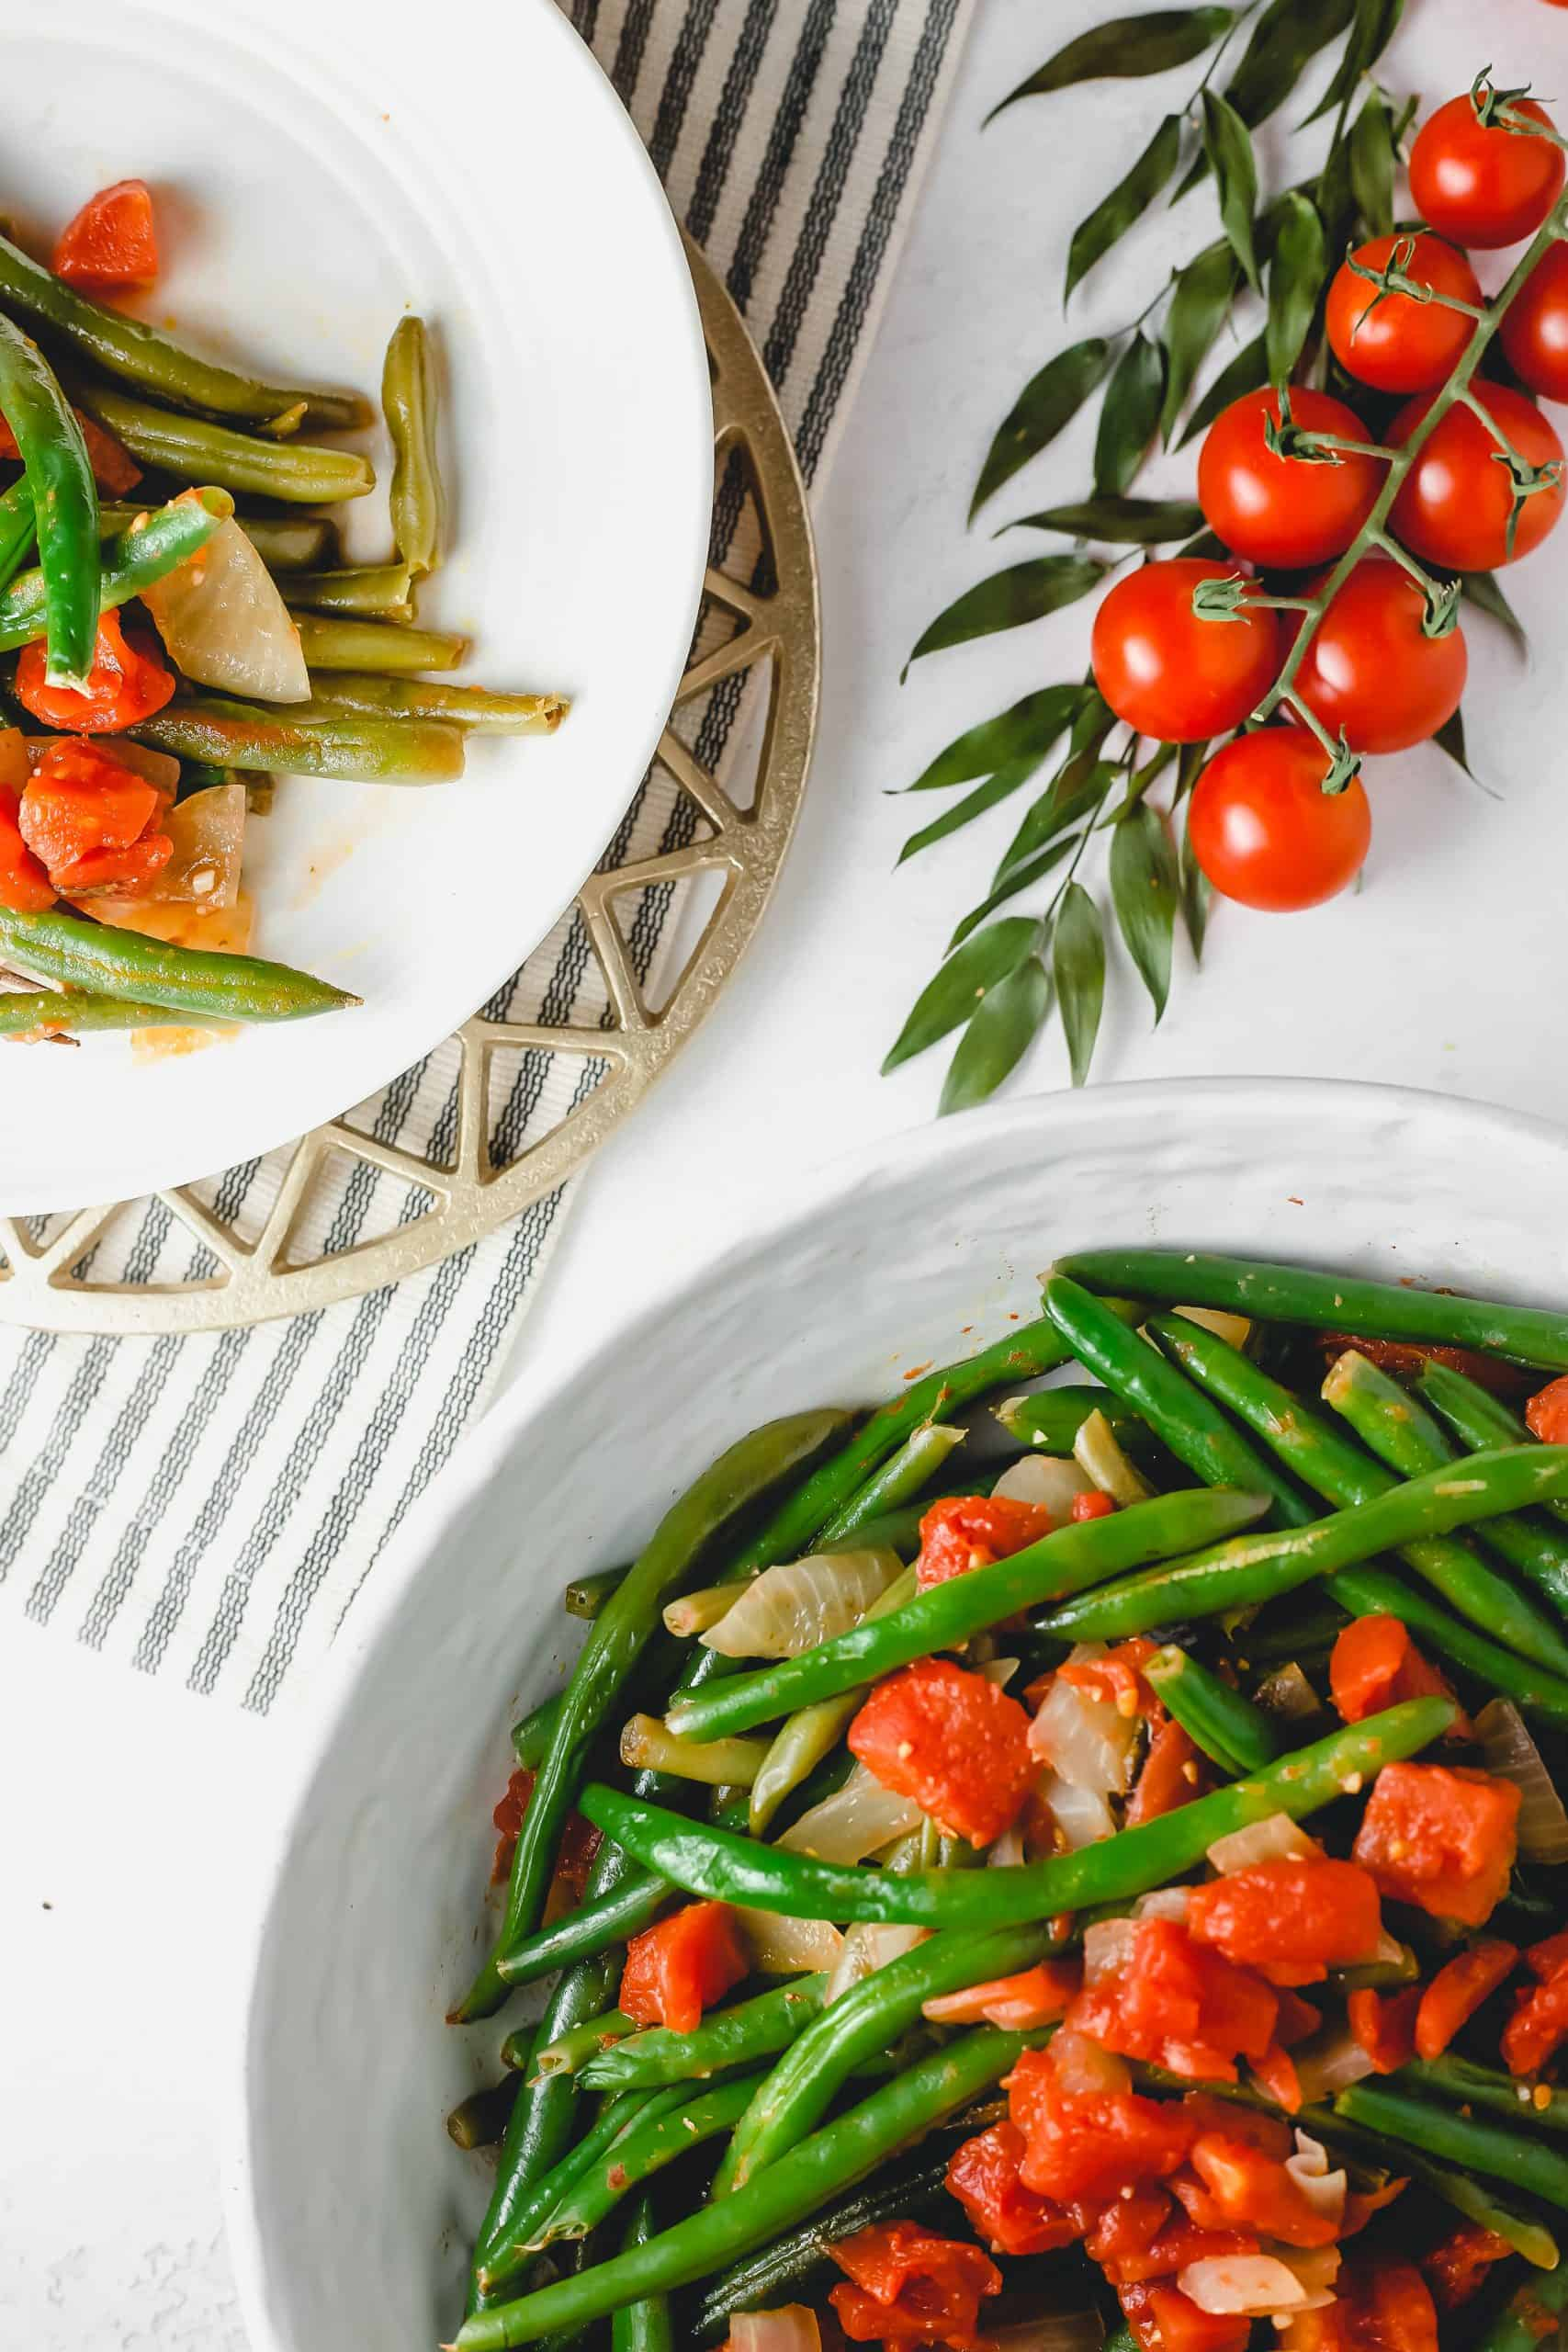 Large bowl and plate with green bean recipe, napkin and fresh tomatoes